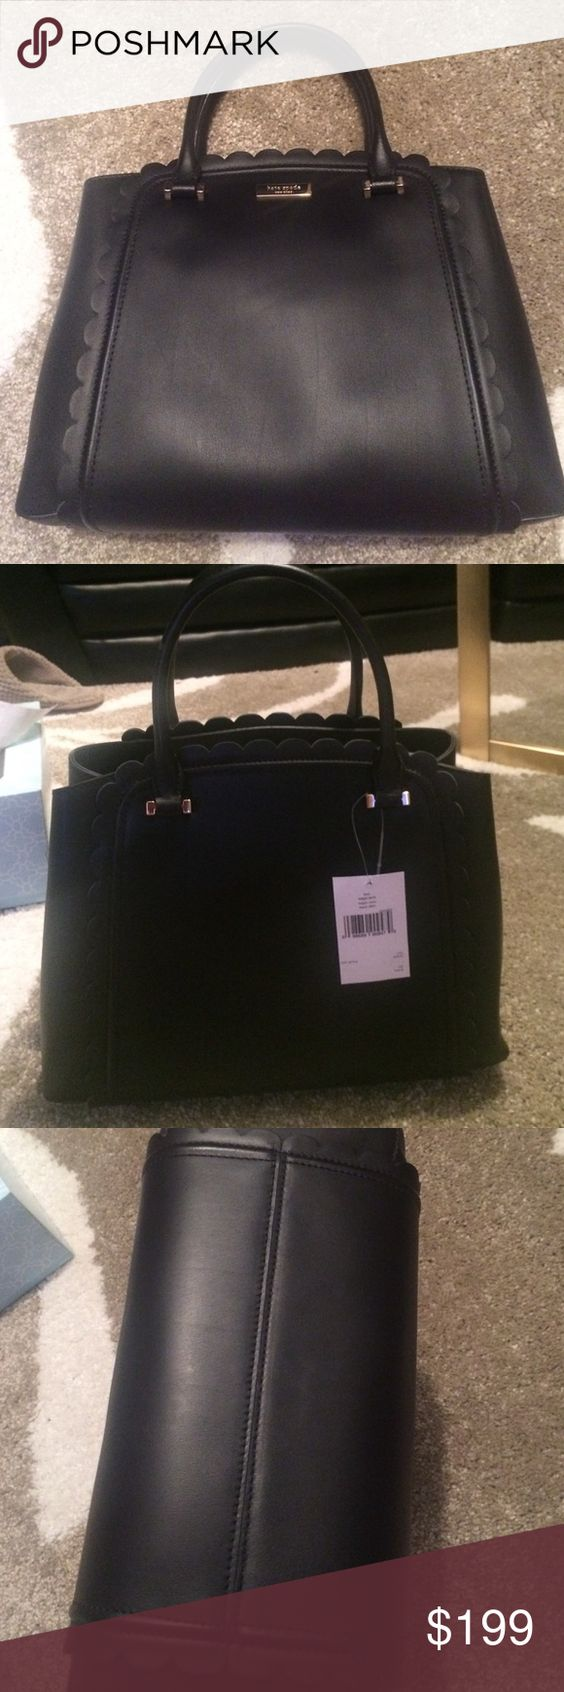 Kat Spade Linzi Maple Court Satchel Brand new! Smooth black leather. Includes shoulder strap. kate spade Bags Satchels